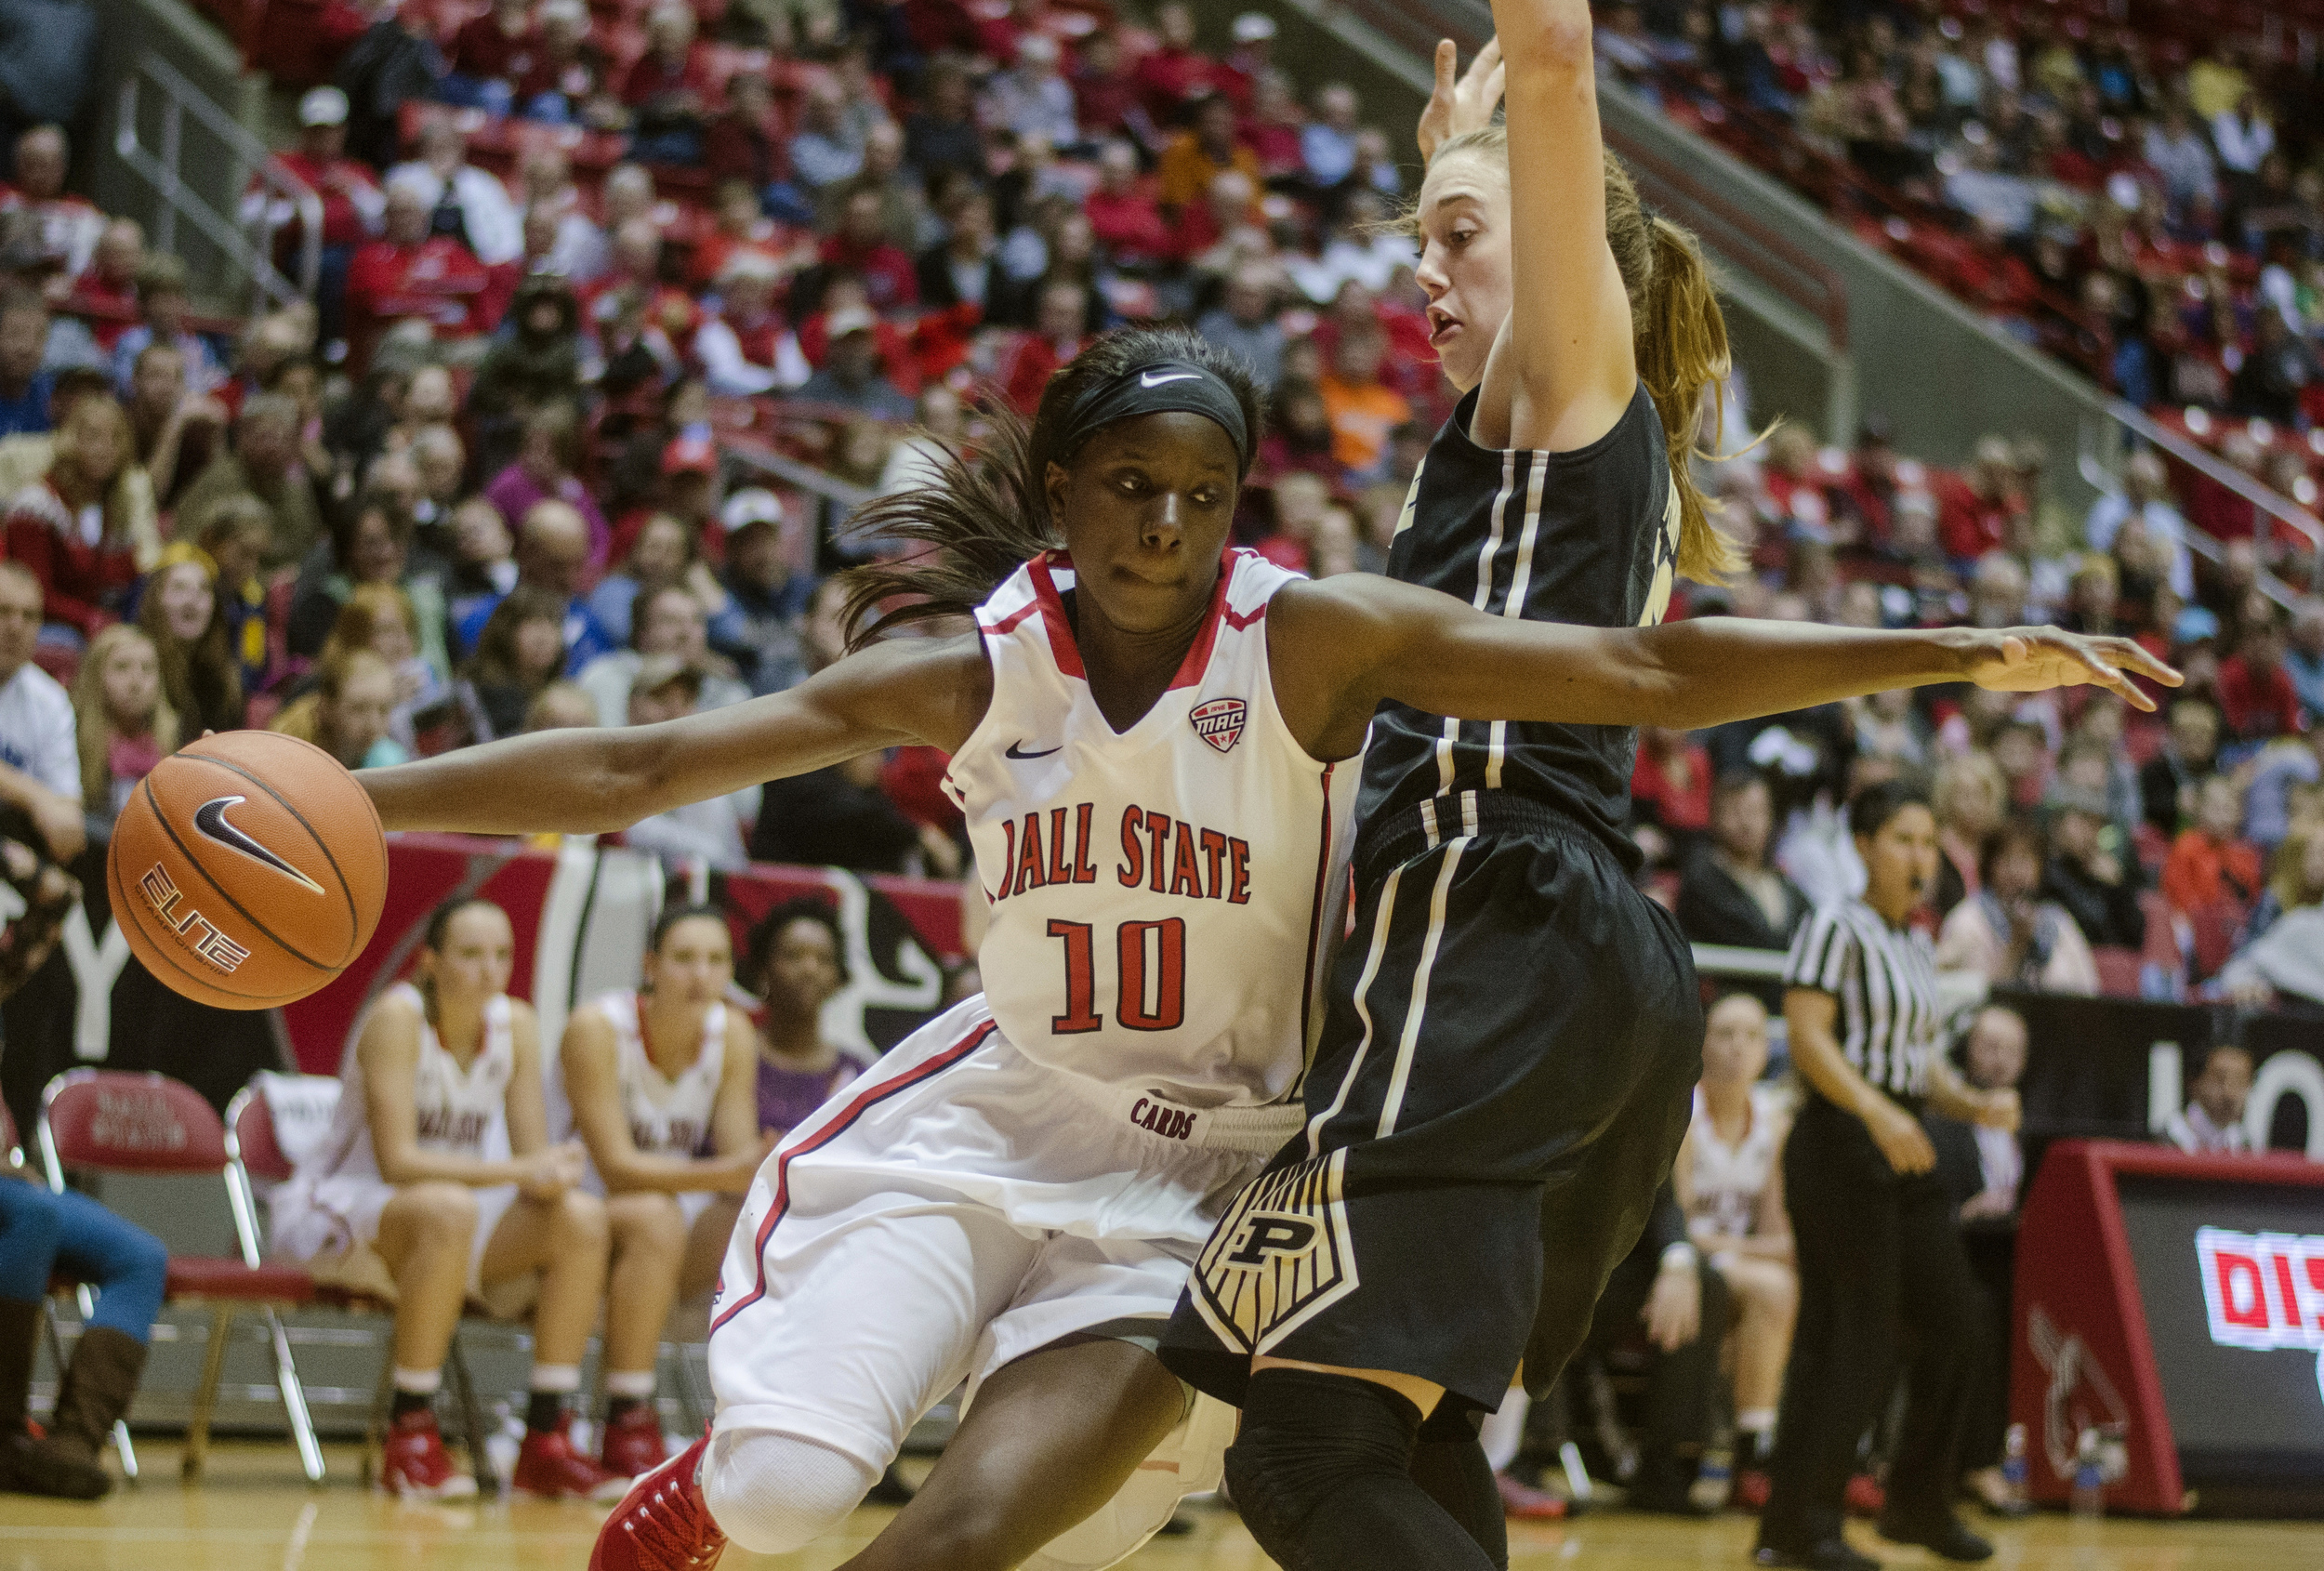 Guard Calyn Hosea attempts to get past a Purdue player during the game on Nov. 14, 2014, at Worthen Arena. Hosea averaged 3.5 points in 31 games.